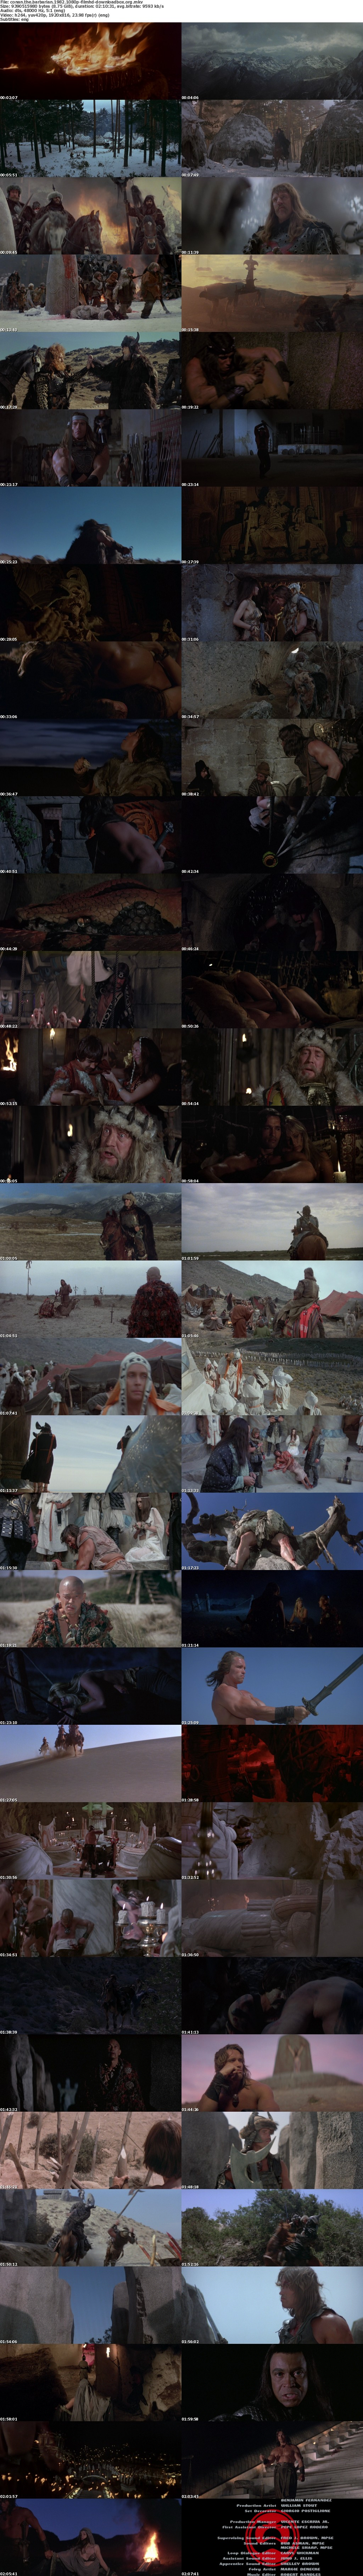 Conan The Barbarian 1982 1080p BluRay x264-FilmHD